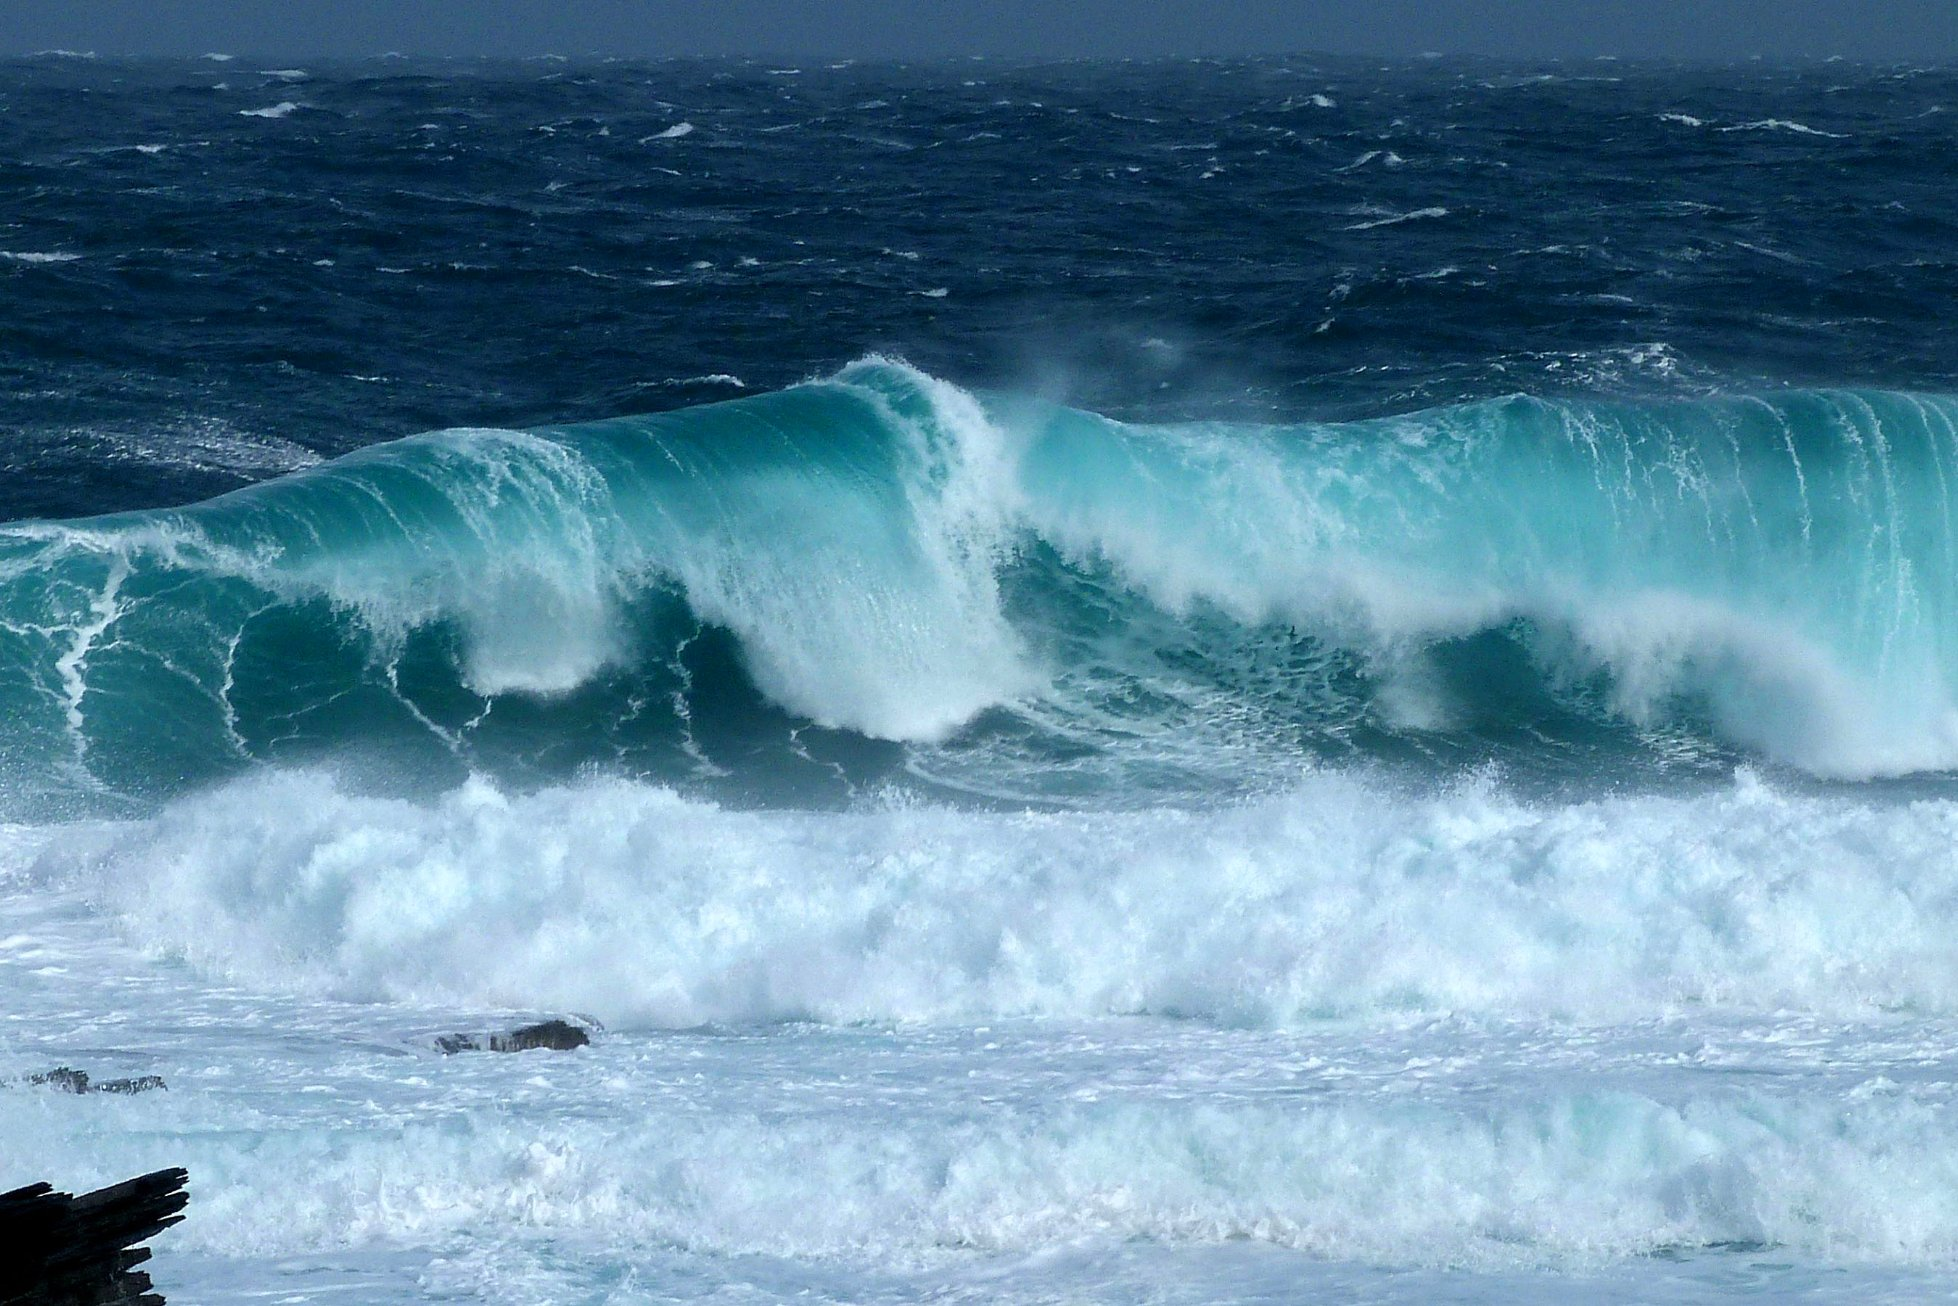 Wave-watching in Orkney - image by Carol Leslie